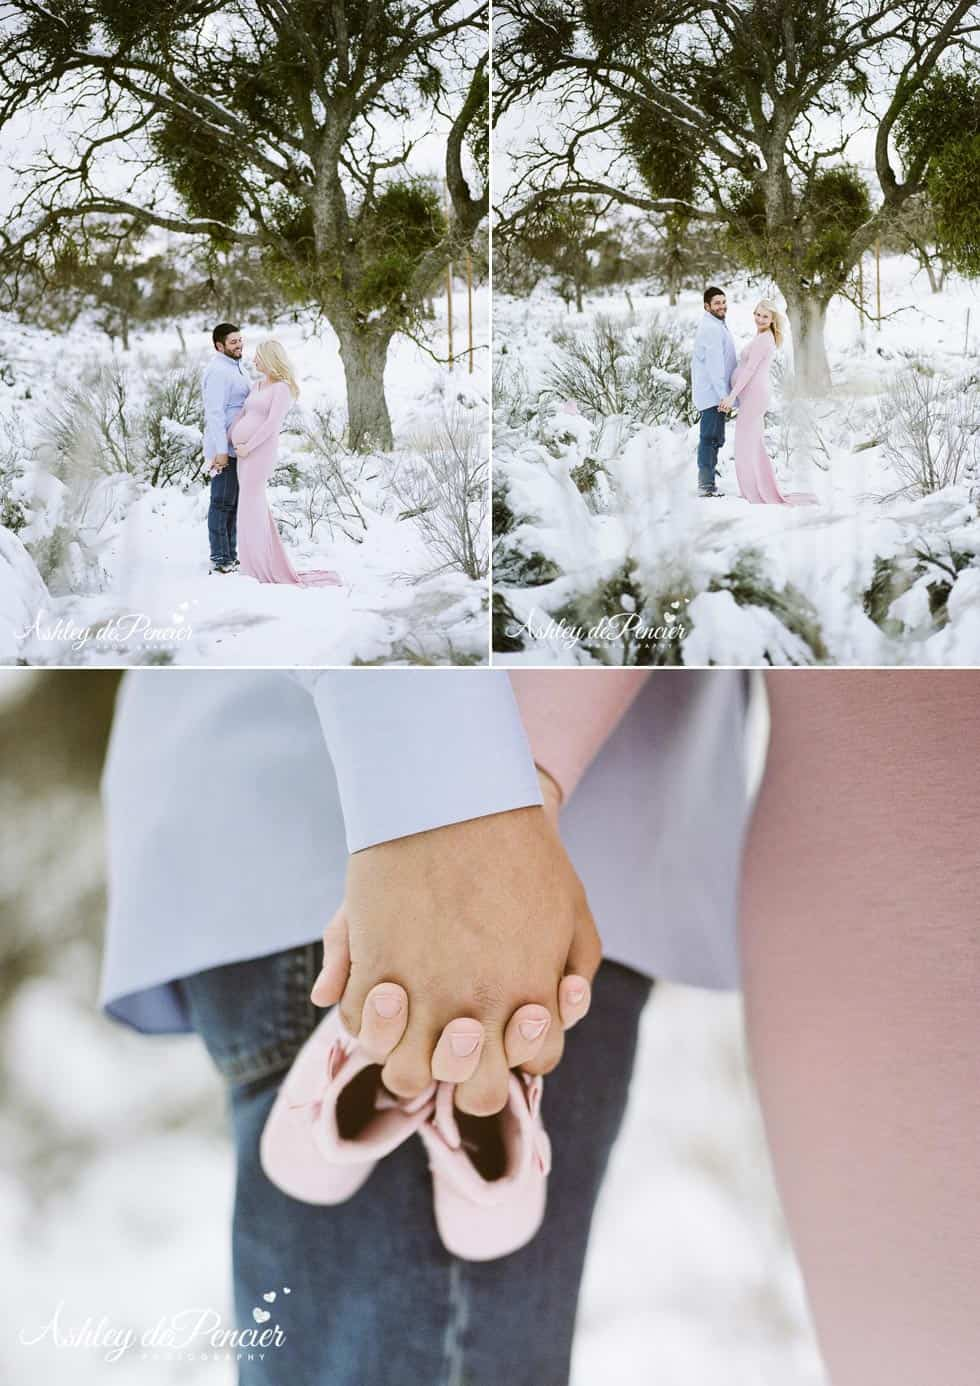 Man and woman standing in the snow holding hands